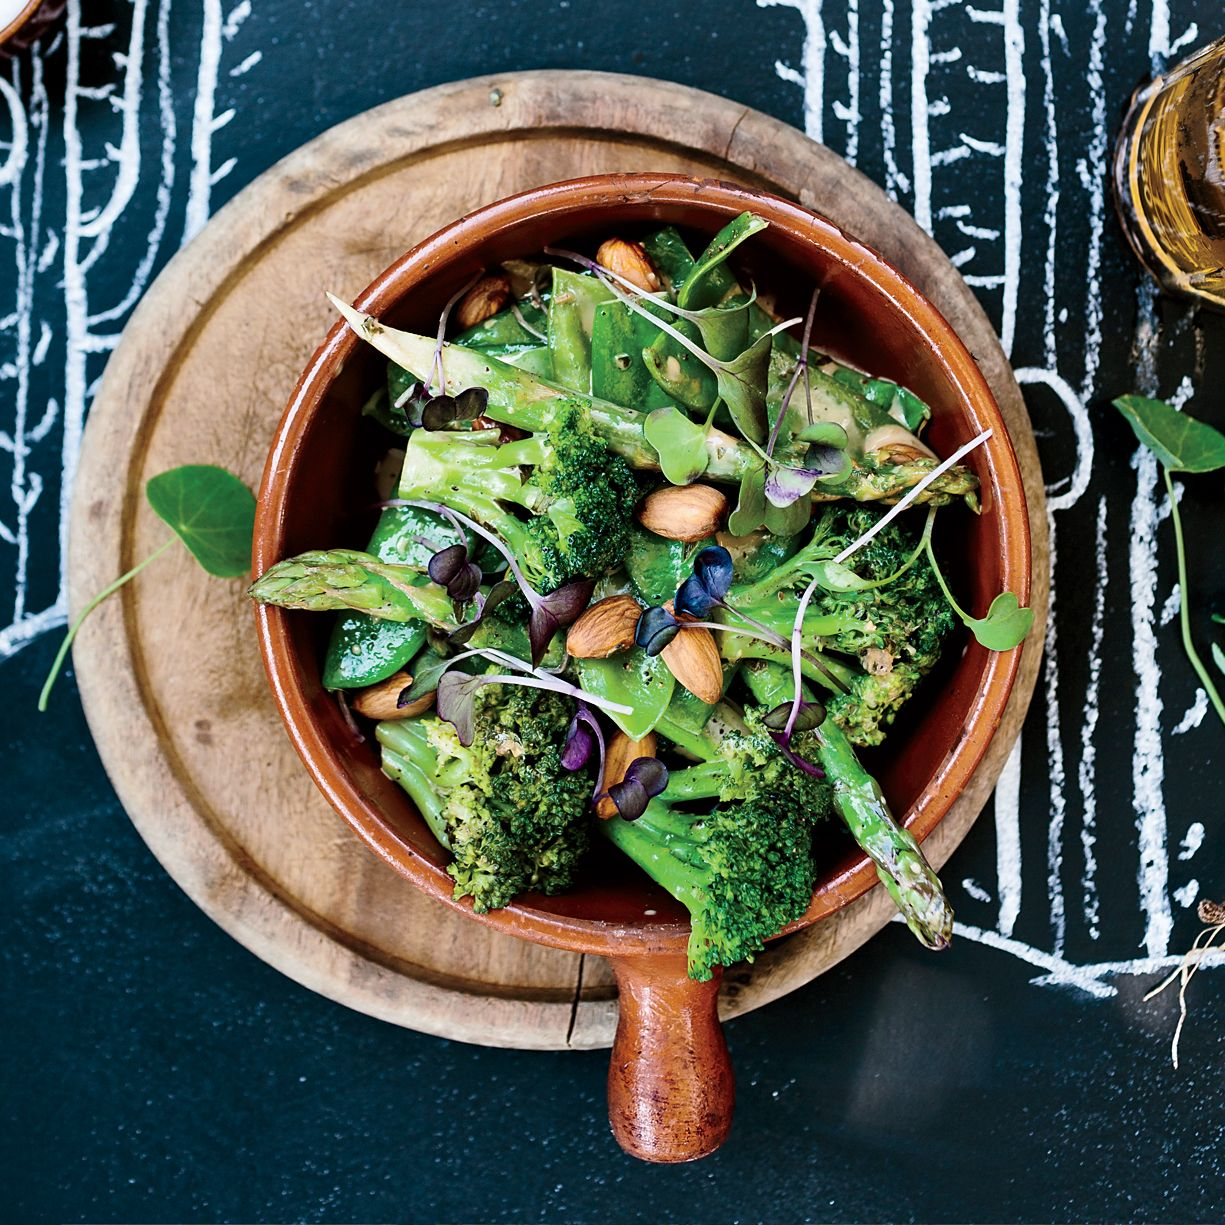 Healthy vegetable dishes tahini dressing tahini and dressings dishes forumfinder Image collections